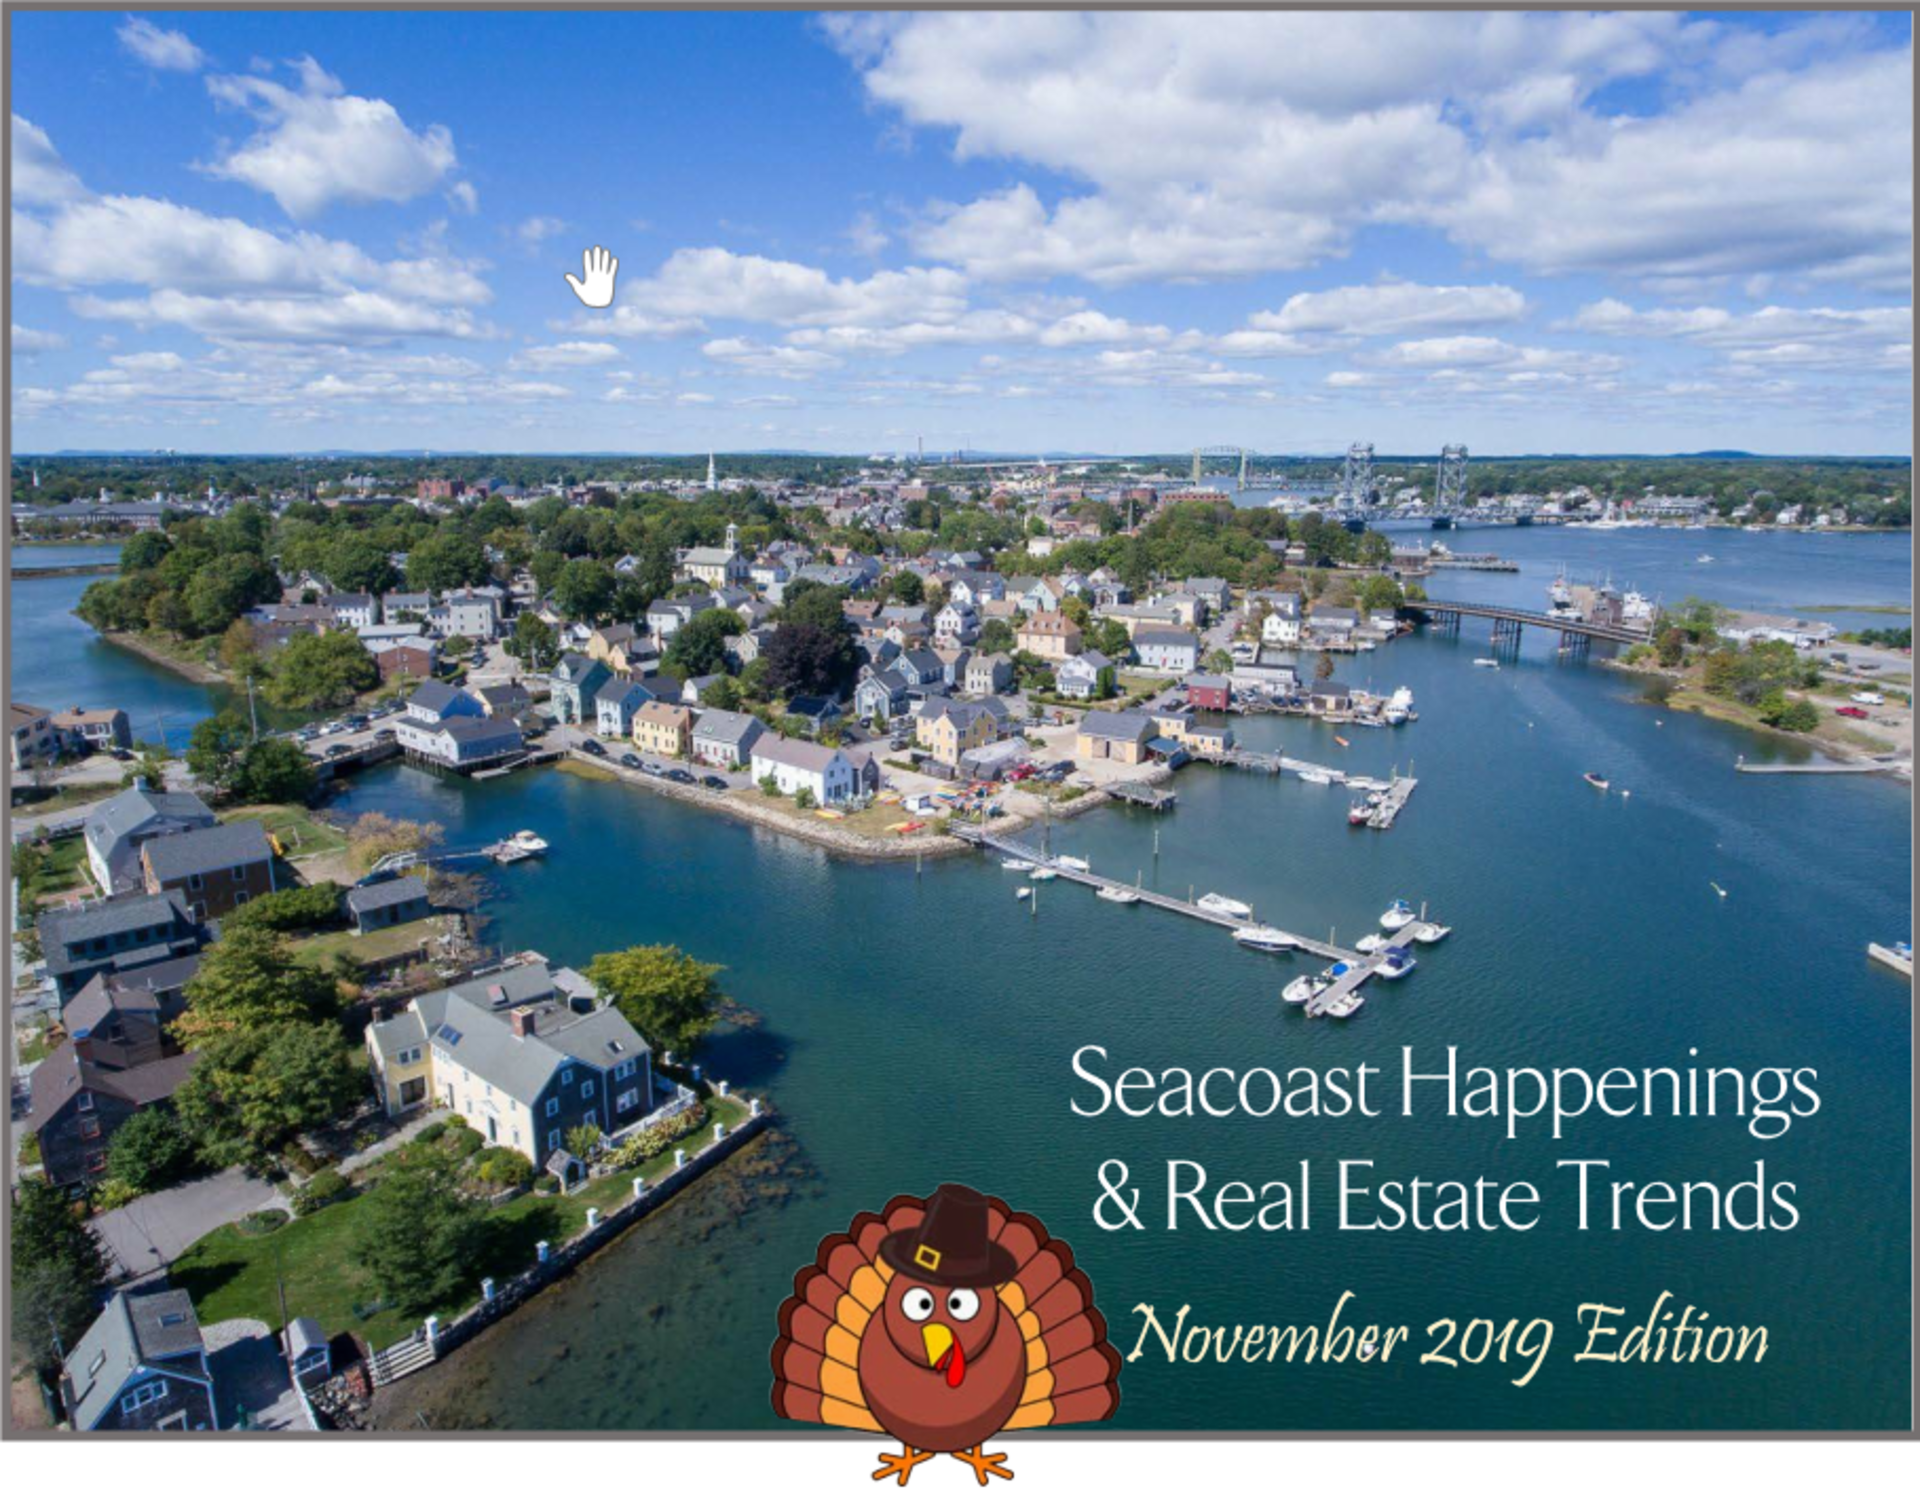 Seacoast Happenings in November